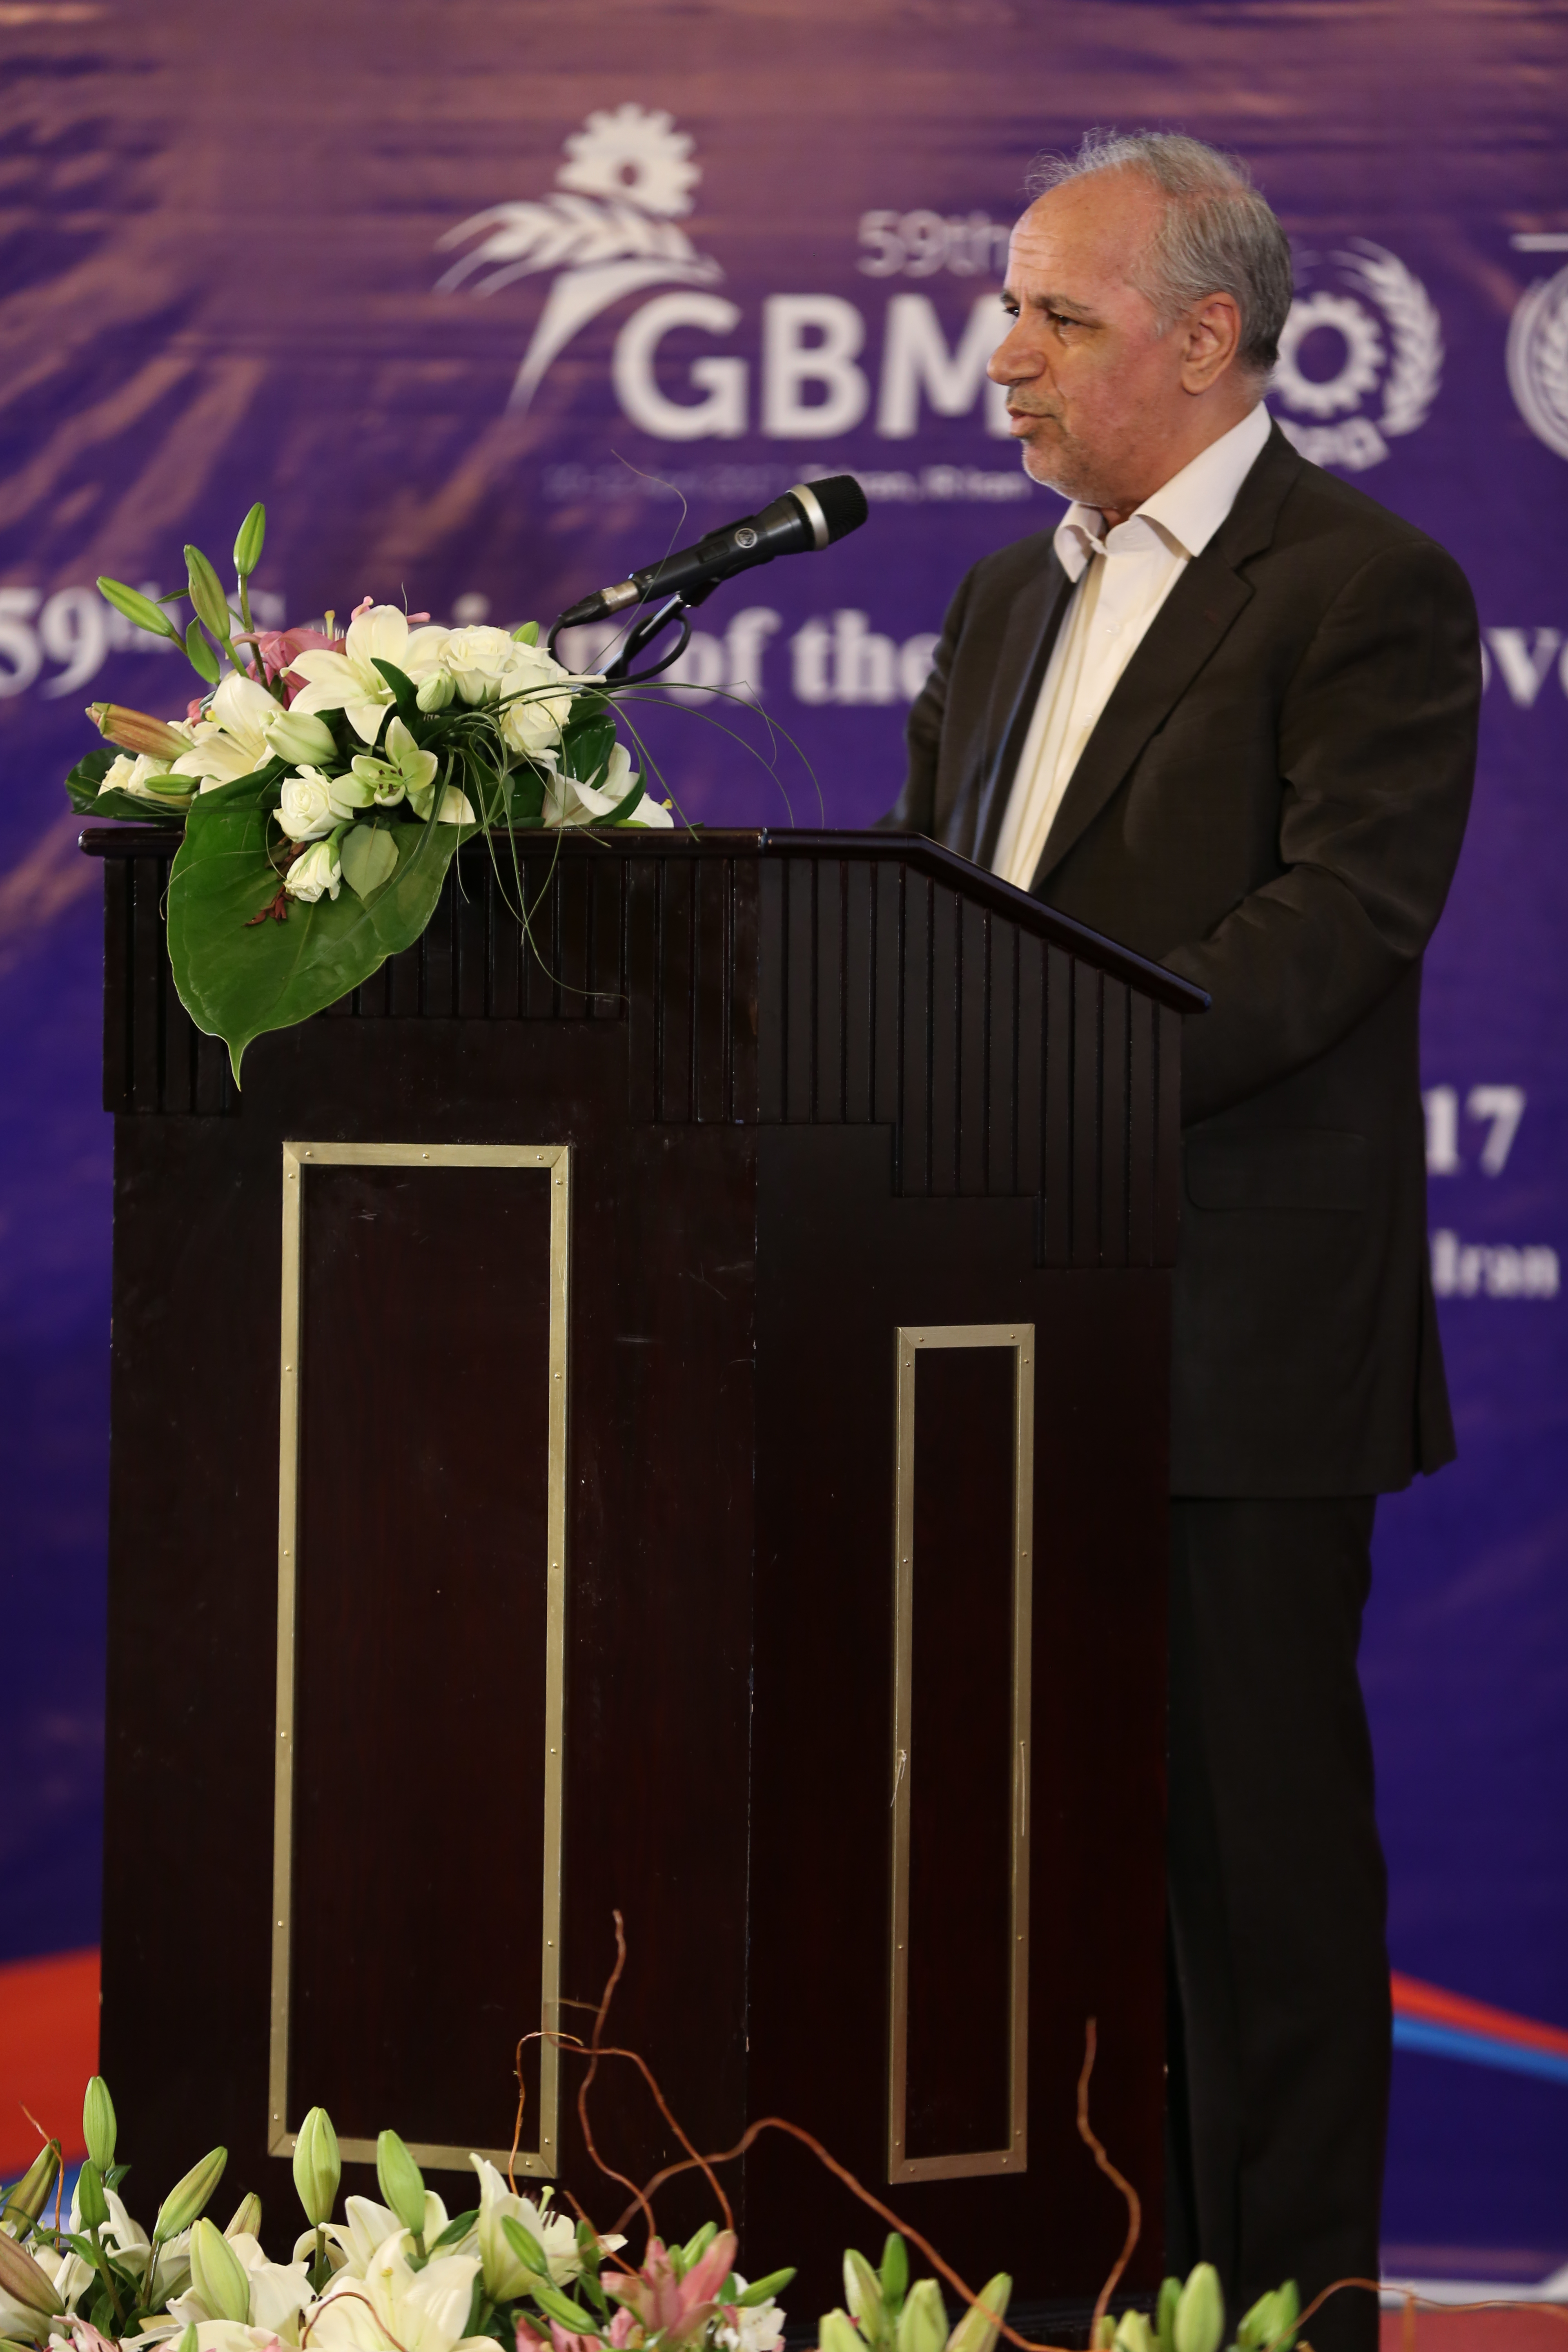 Vice President and Head of the Administrative and Recruitment Organization of IR Iran HE Jamshid Ansari giving the Inaugural Address.